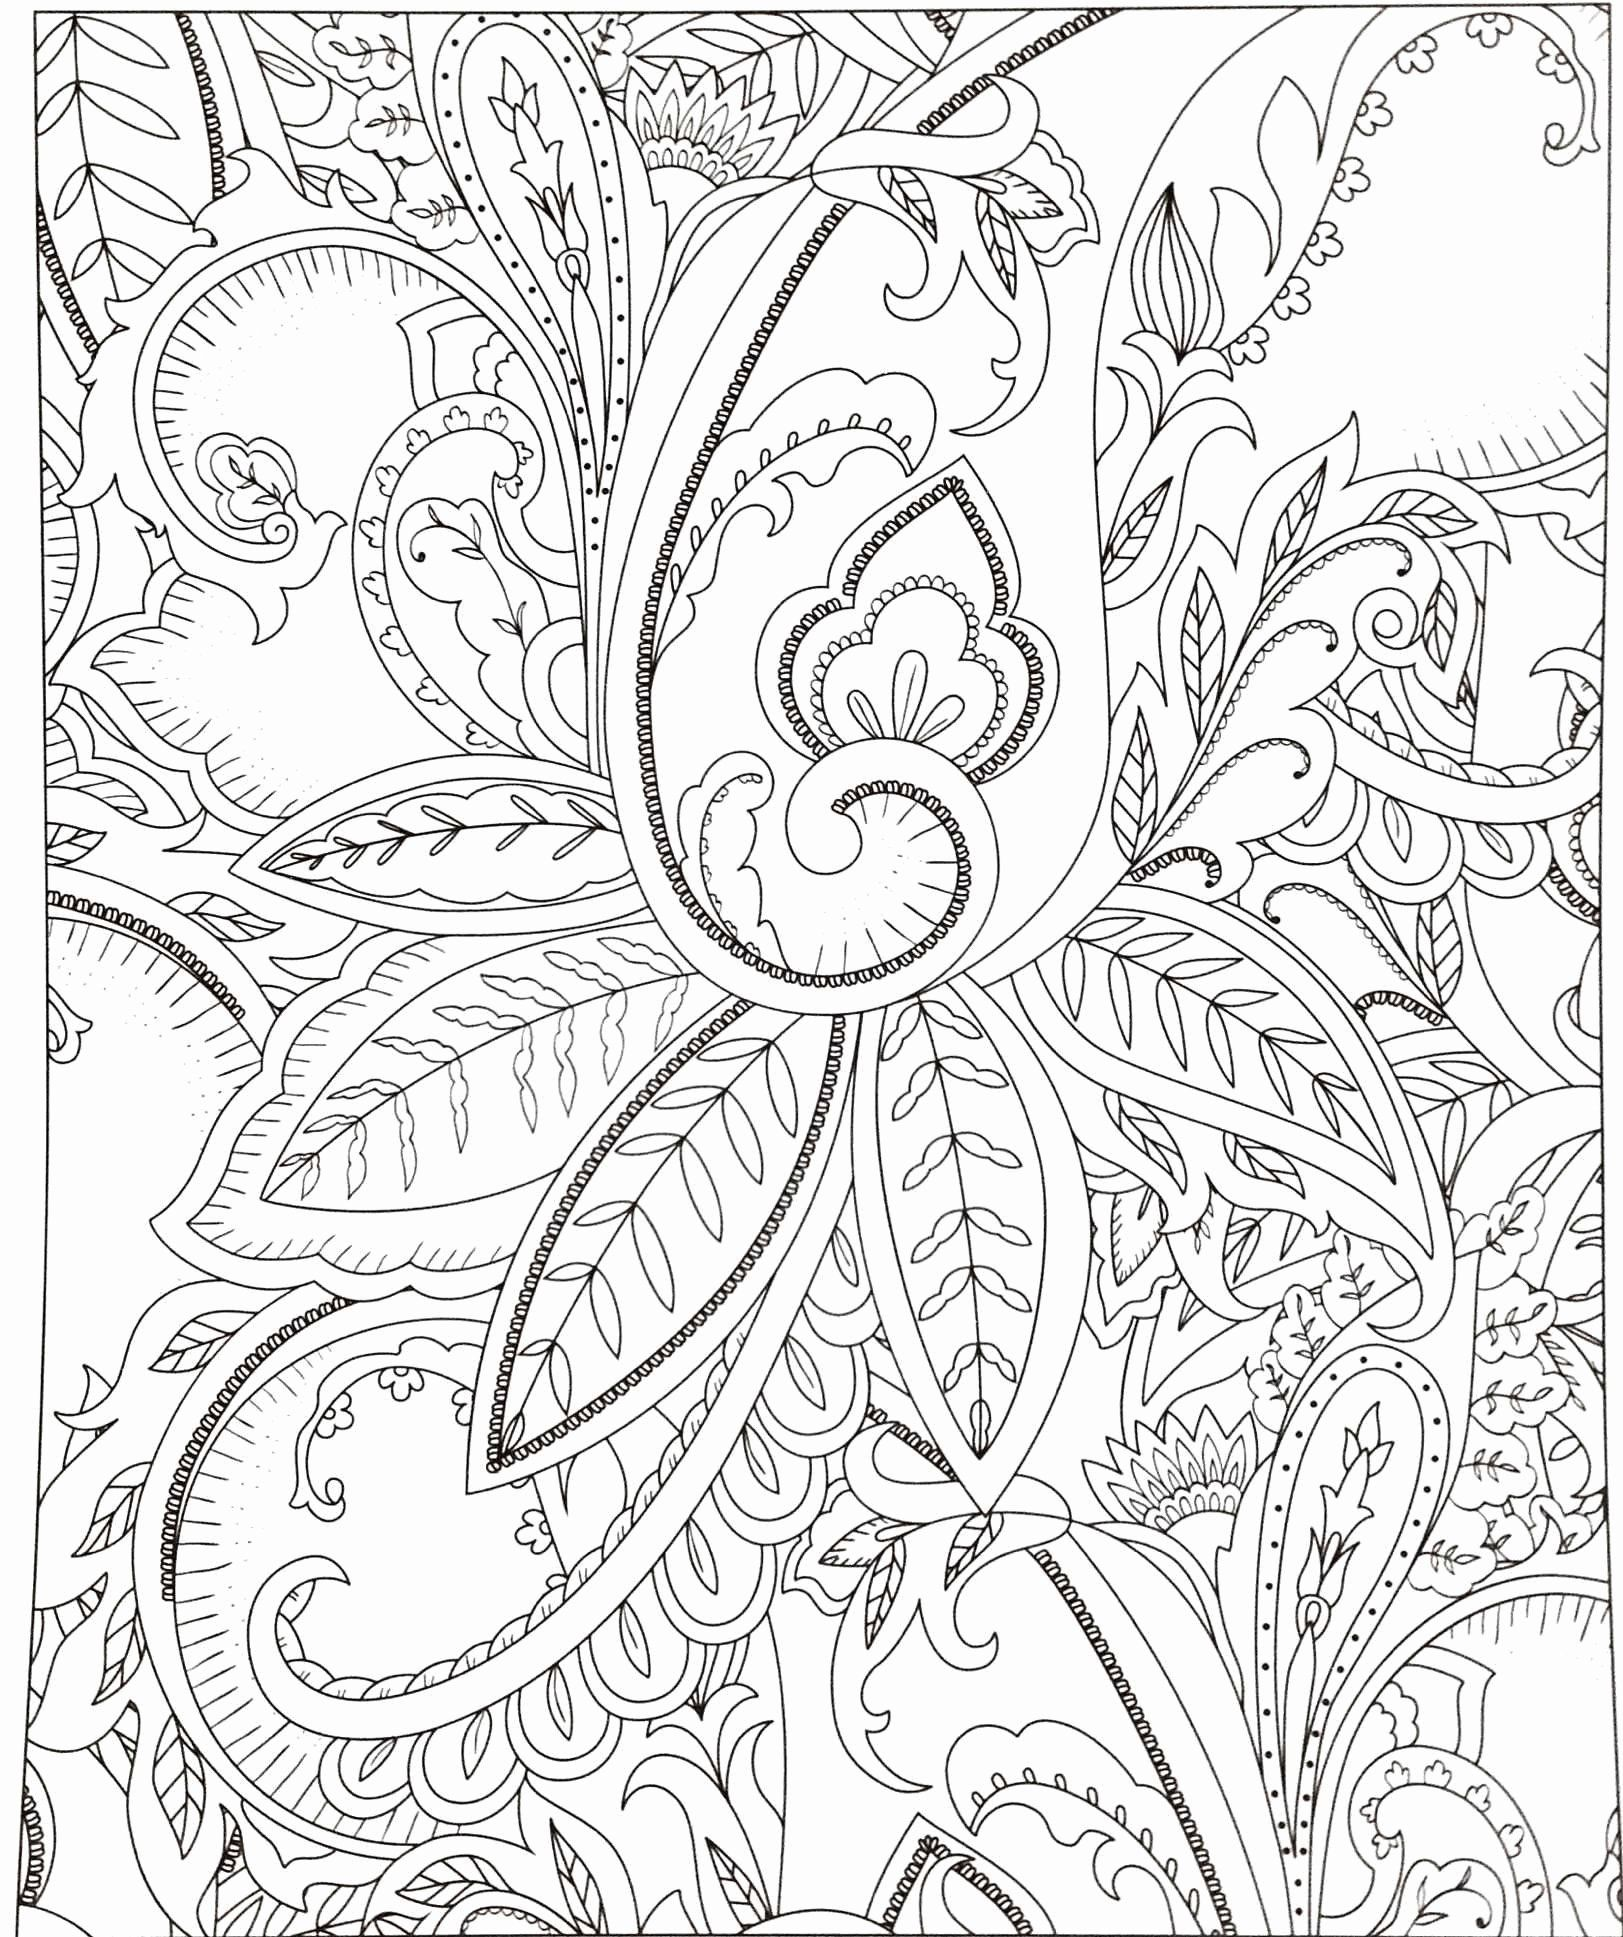 Coloring Flowers And Butterflies Beautiful New Easy Flower Coloring Mandala Coloring Pages Pattern Coloring Pages Coloring Pages Inspirational